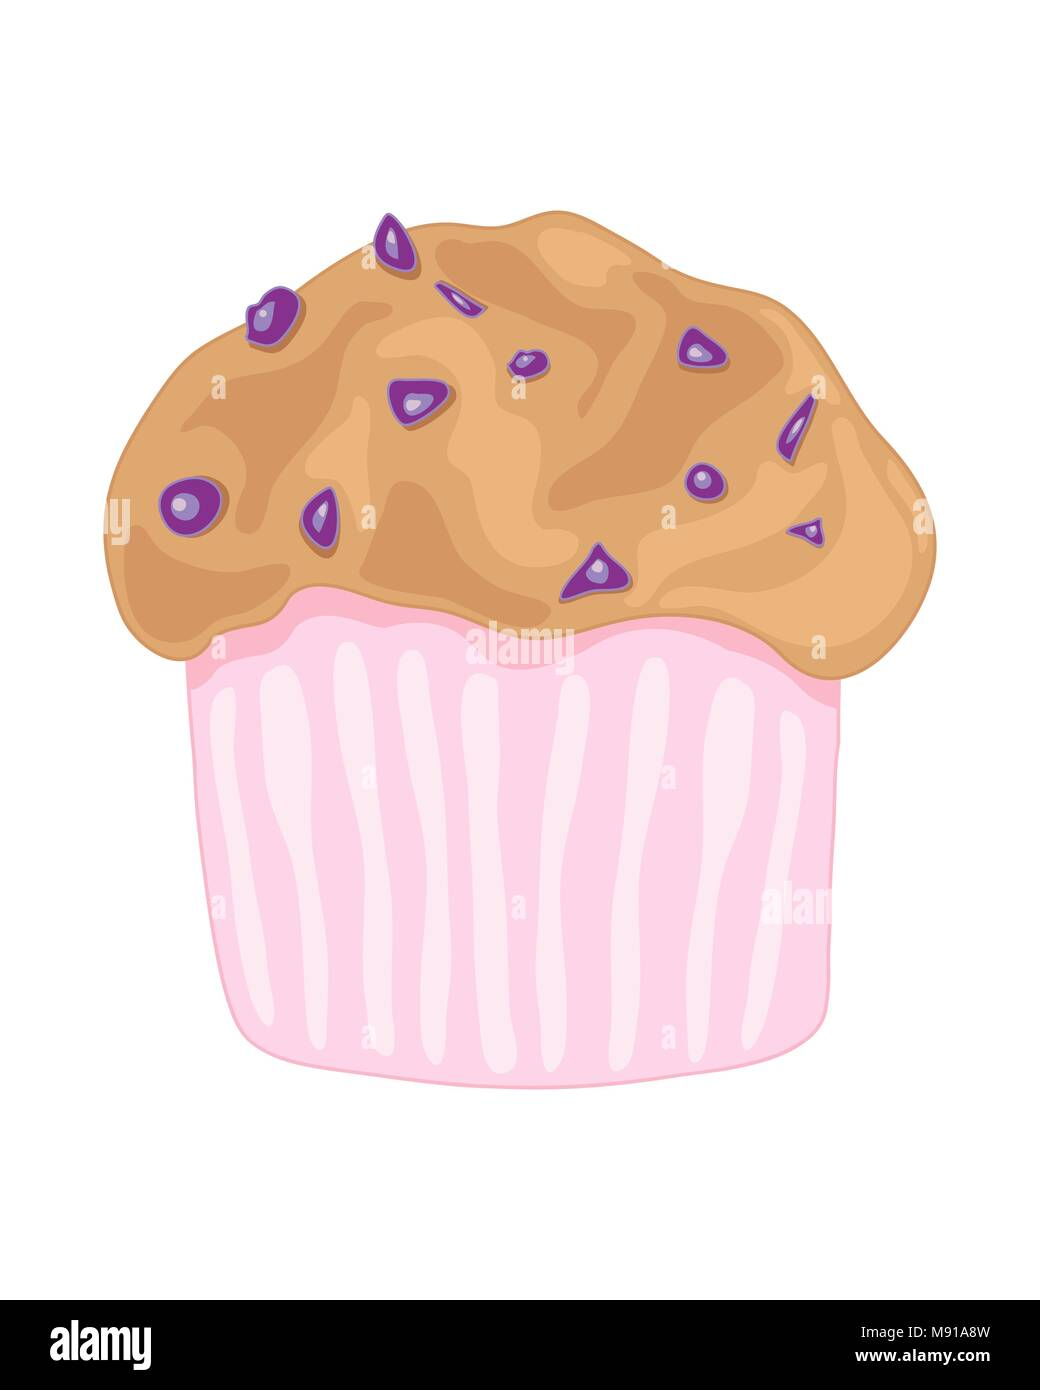 a vector illustration in eps 8 format of a delicious blueberry muffin in a pink case on a white background - Stock Vector